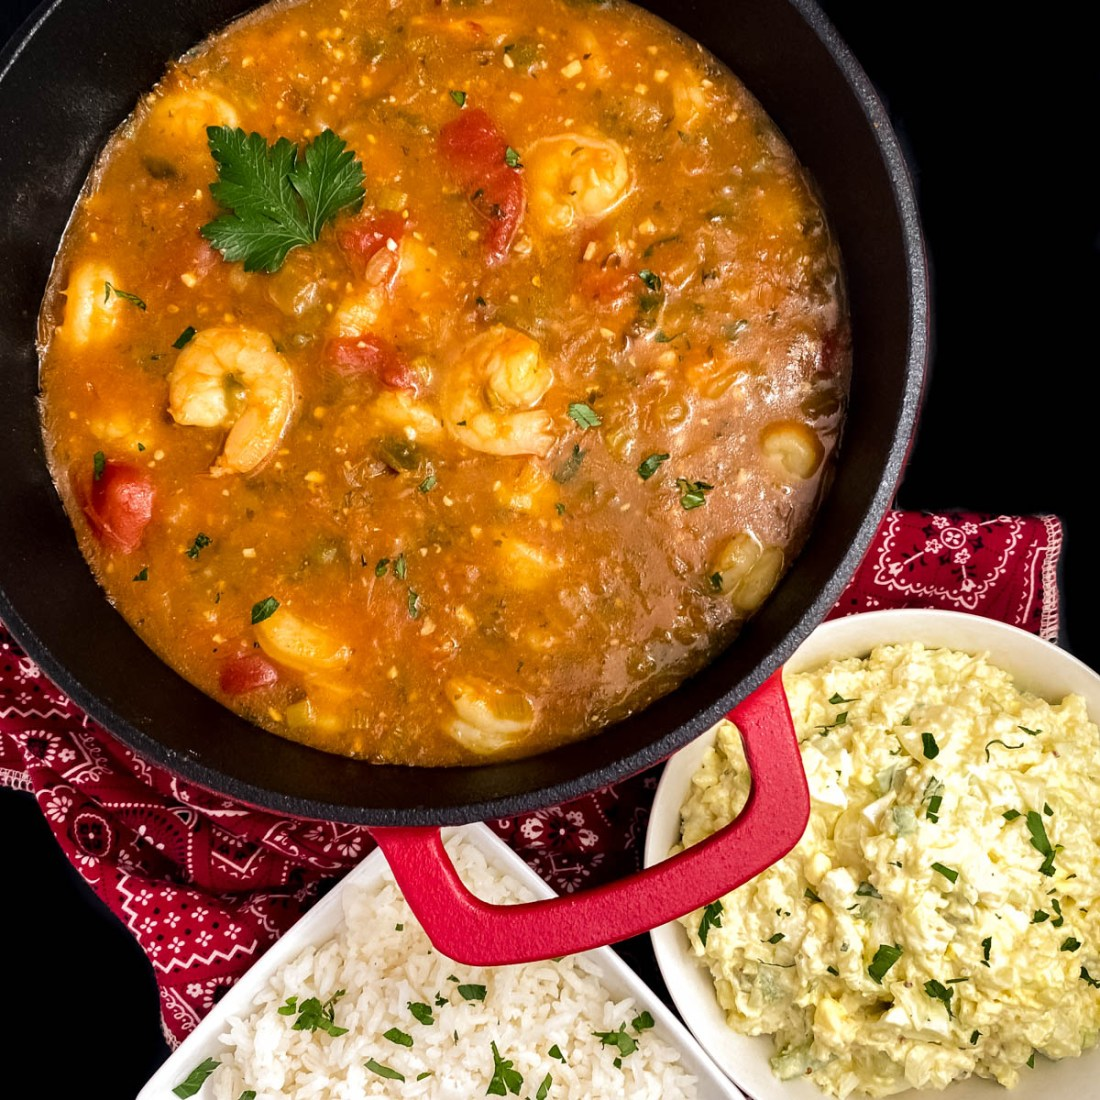 A red cast iron Dutch oven filled with gluten free keto Paleo Cajun shrimp etouffee with a red bandana and bowls of rice and cauliflower rice.